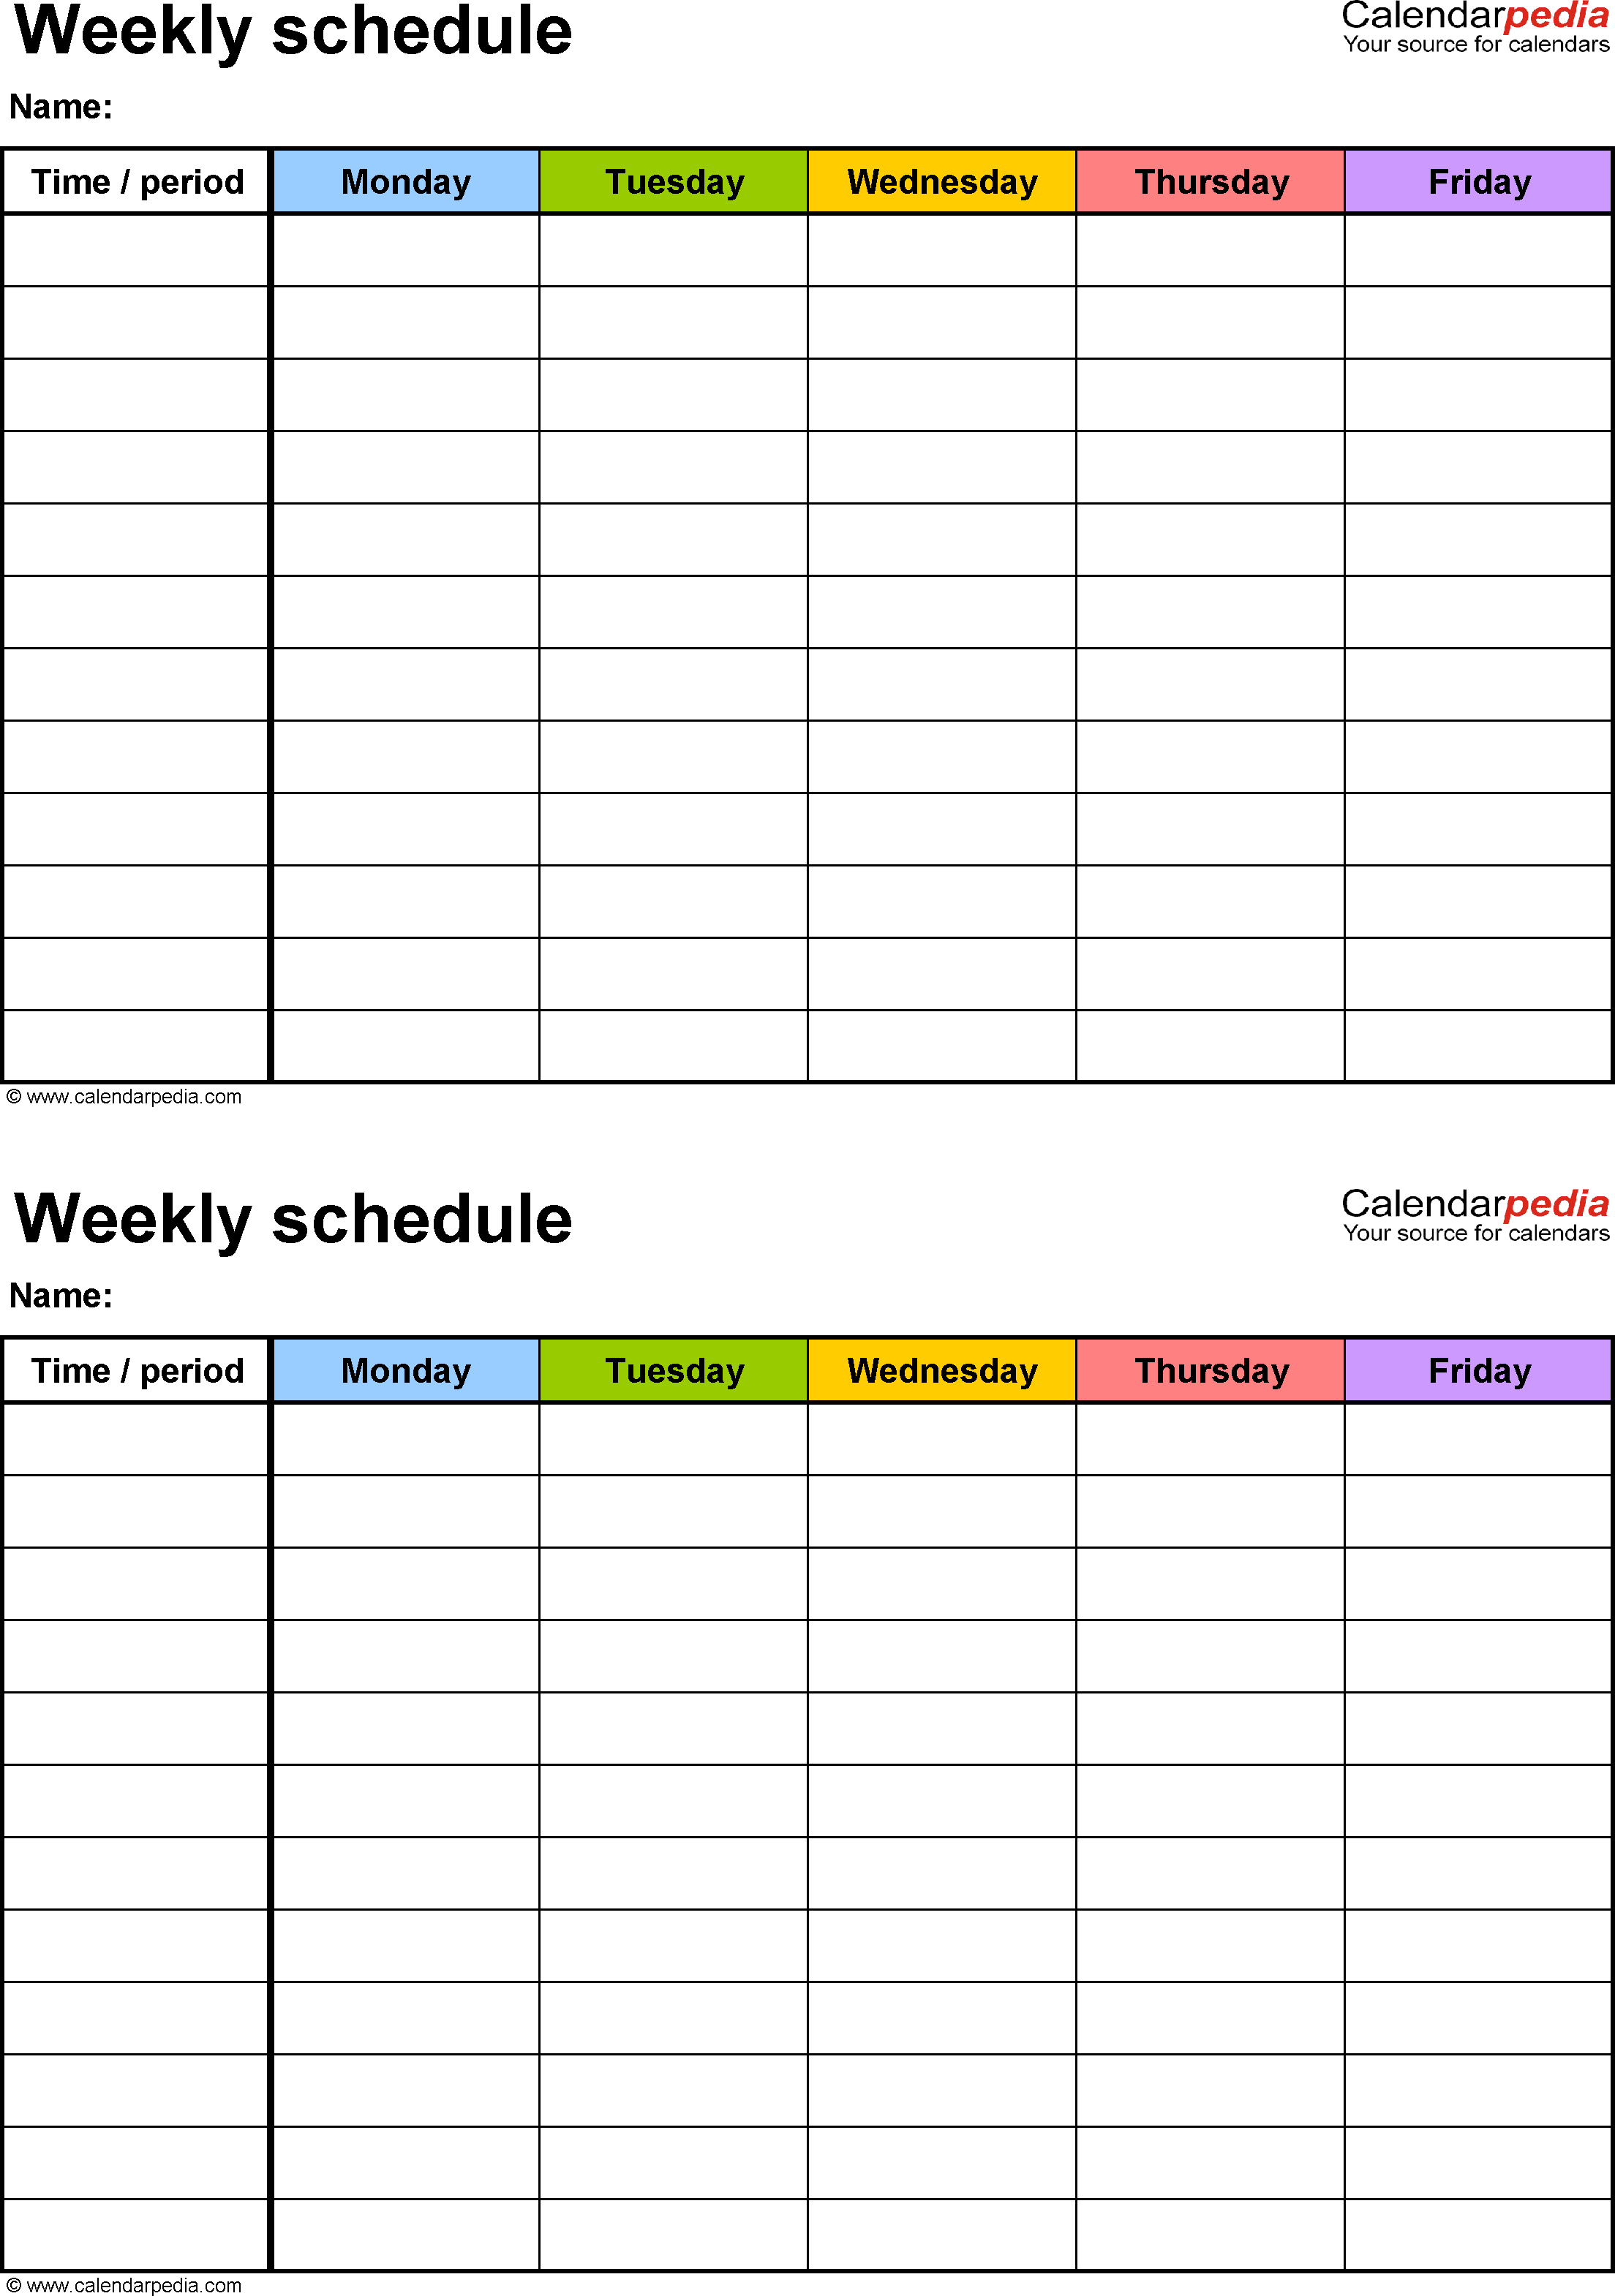 Free Weekly Schedule Templates For Word - 18 Templates regarding Summer Activity Calendar Template